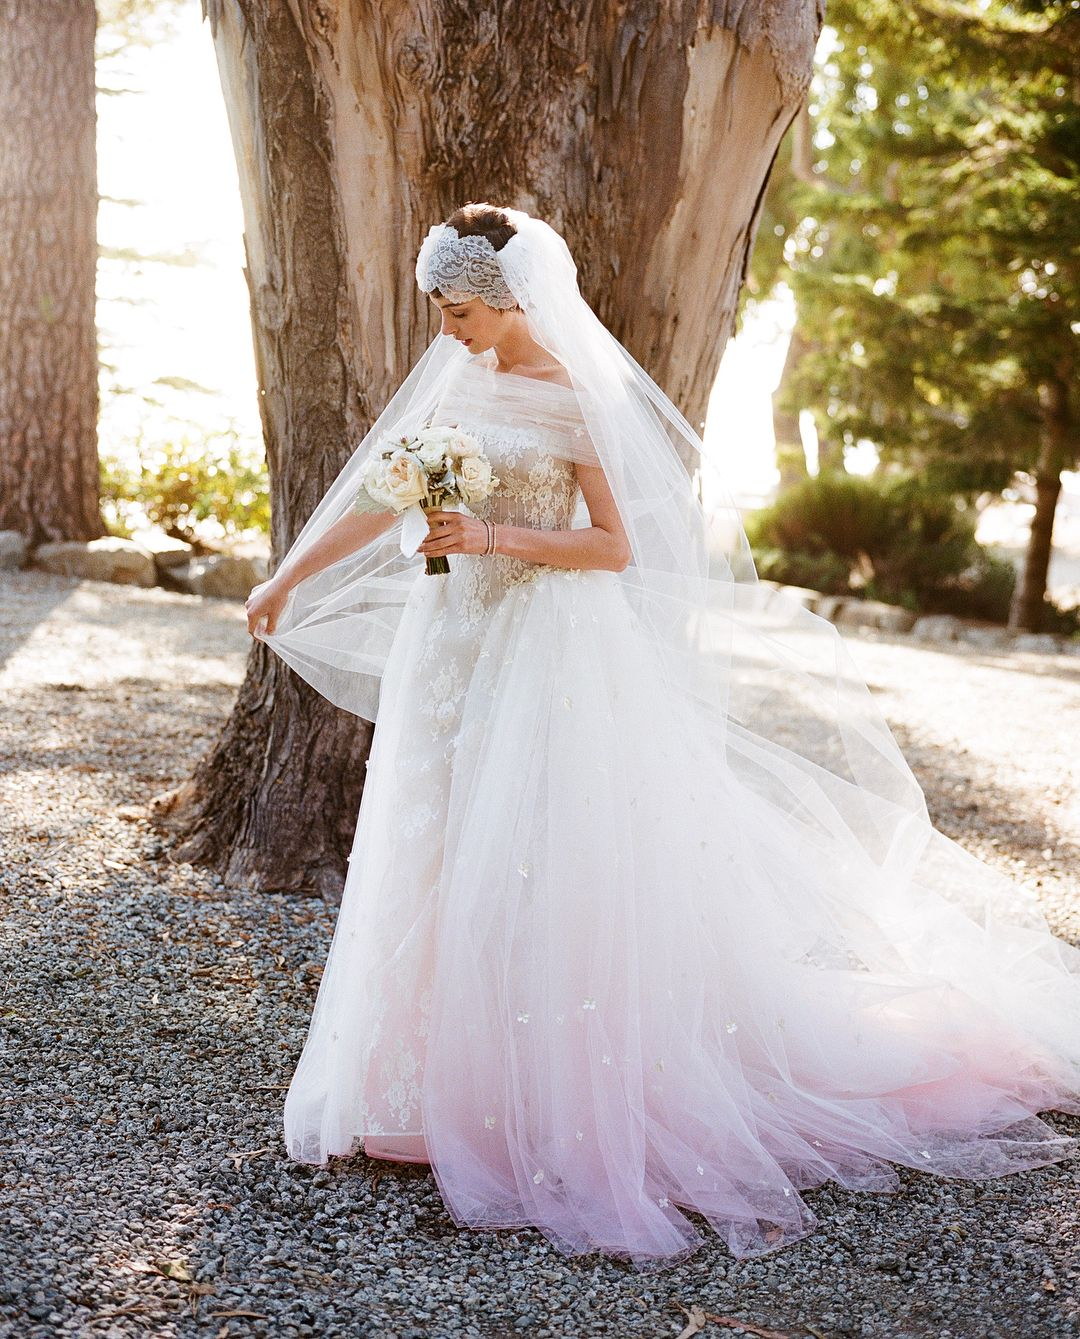 The Most Iconic Pink Wedding Dresses in Hollywood